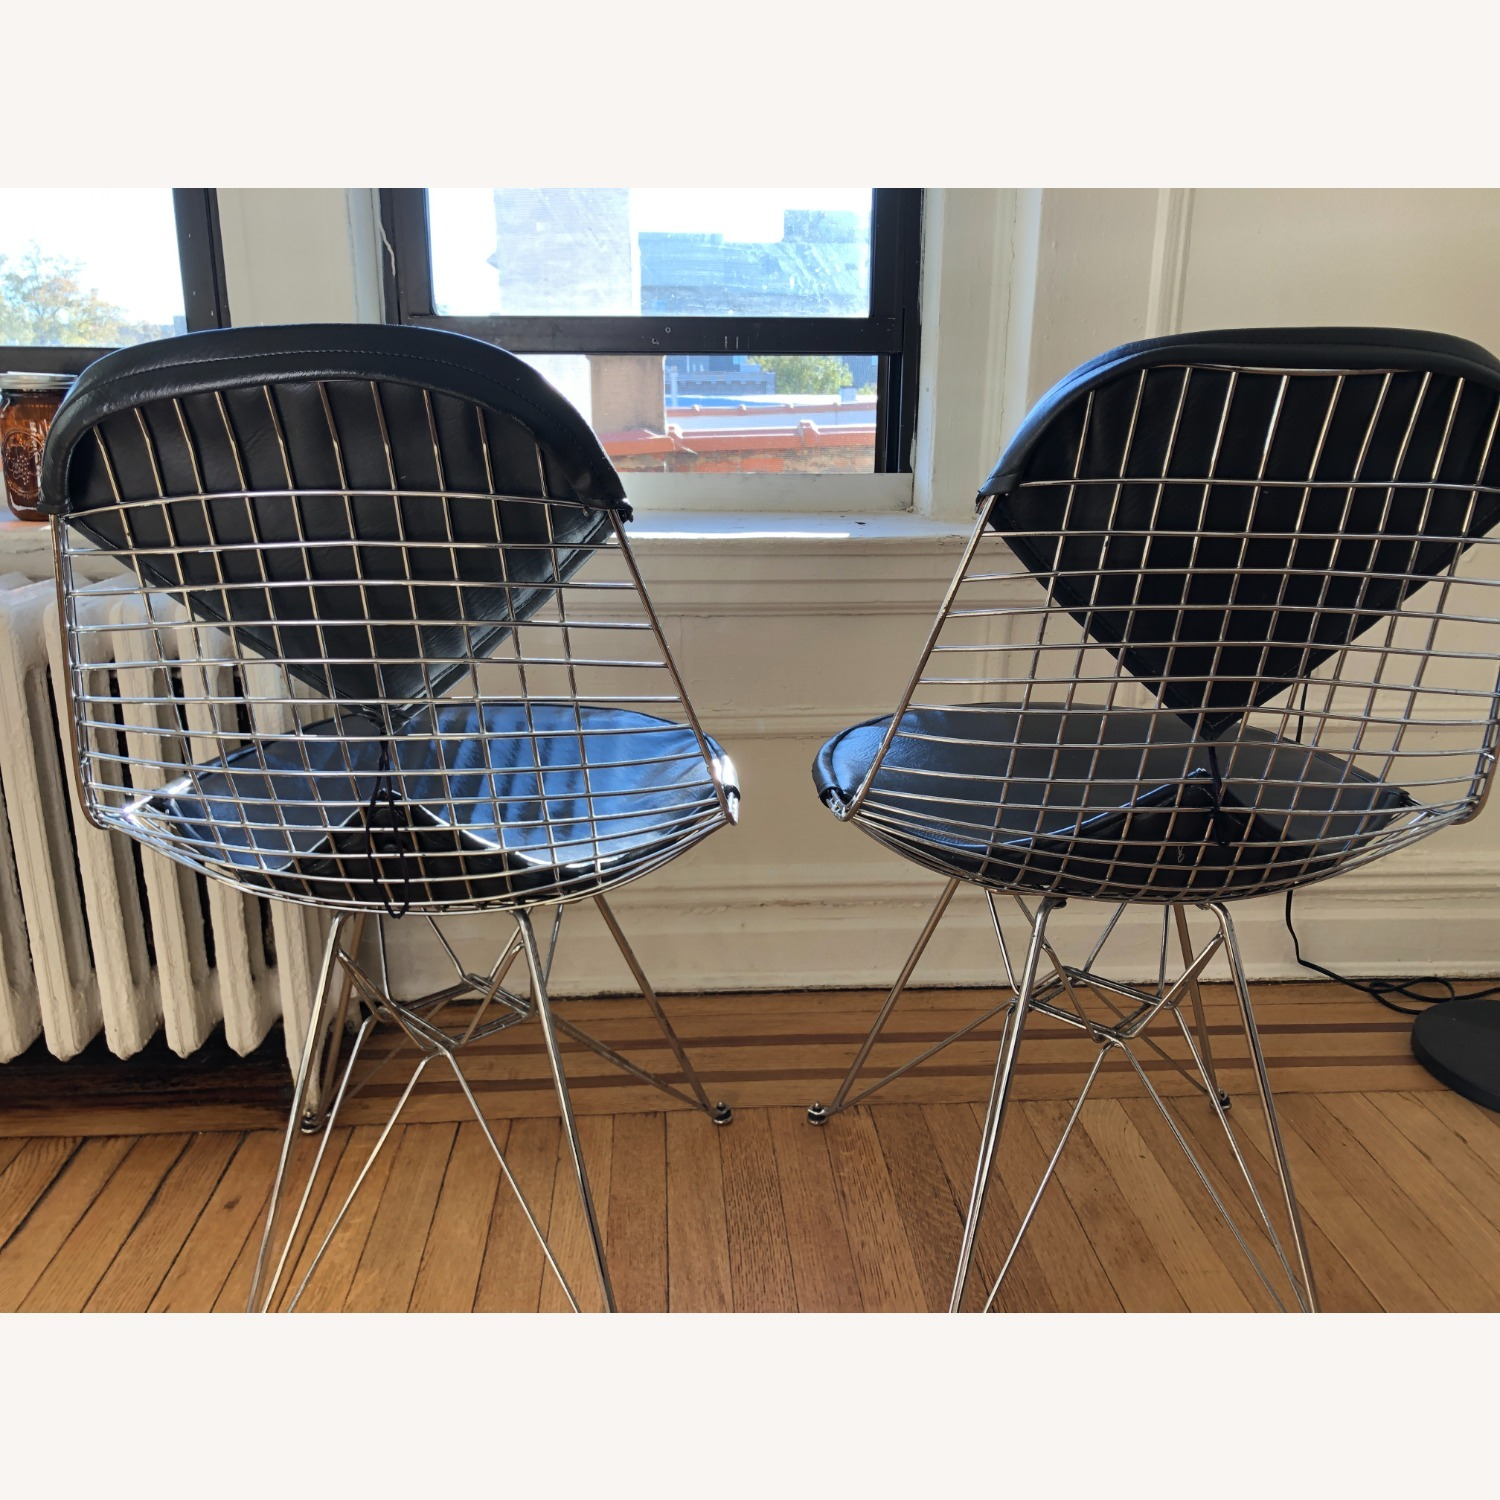 Herman Miller Eames Wire Chair with Bikini Pad - image-8